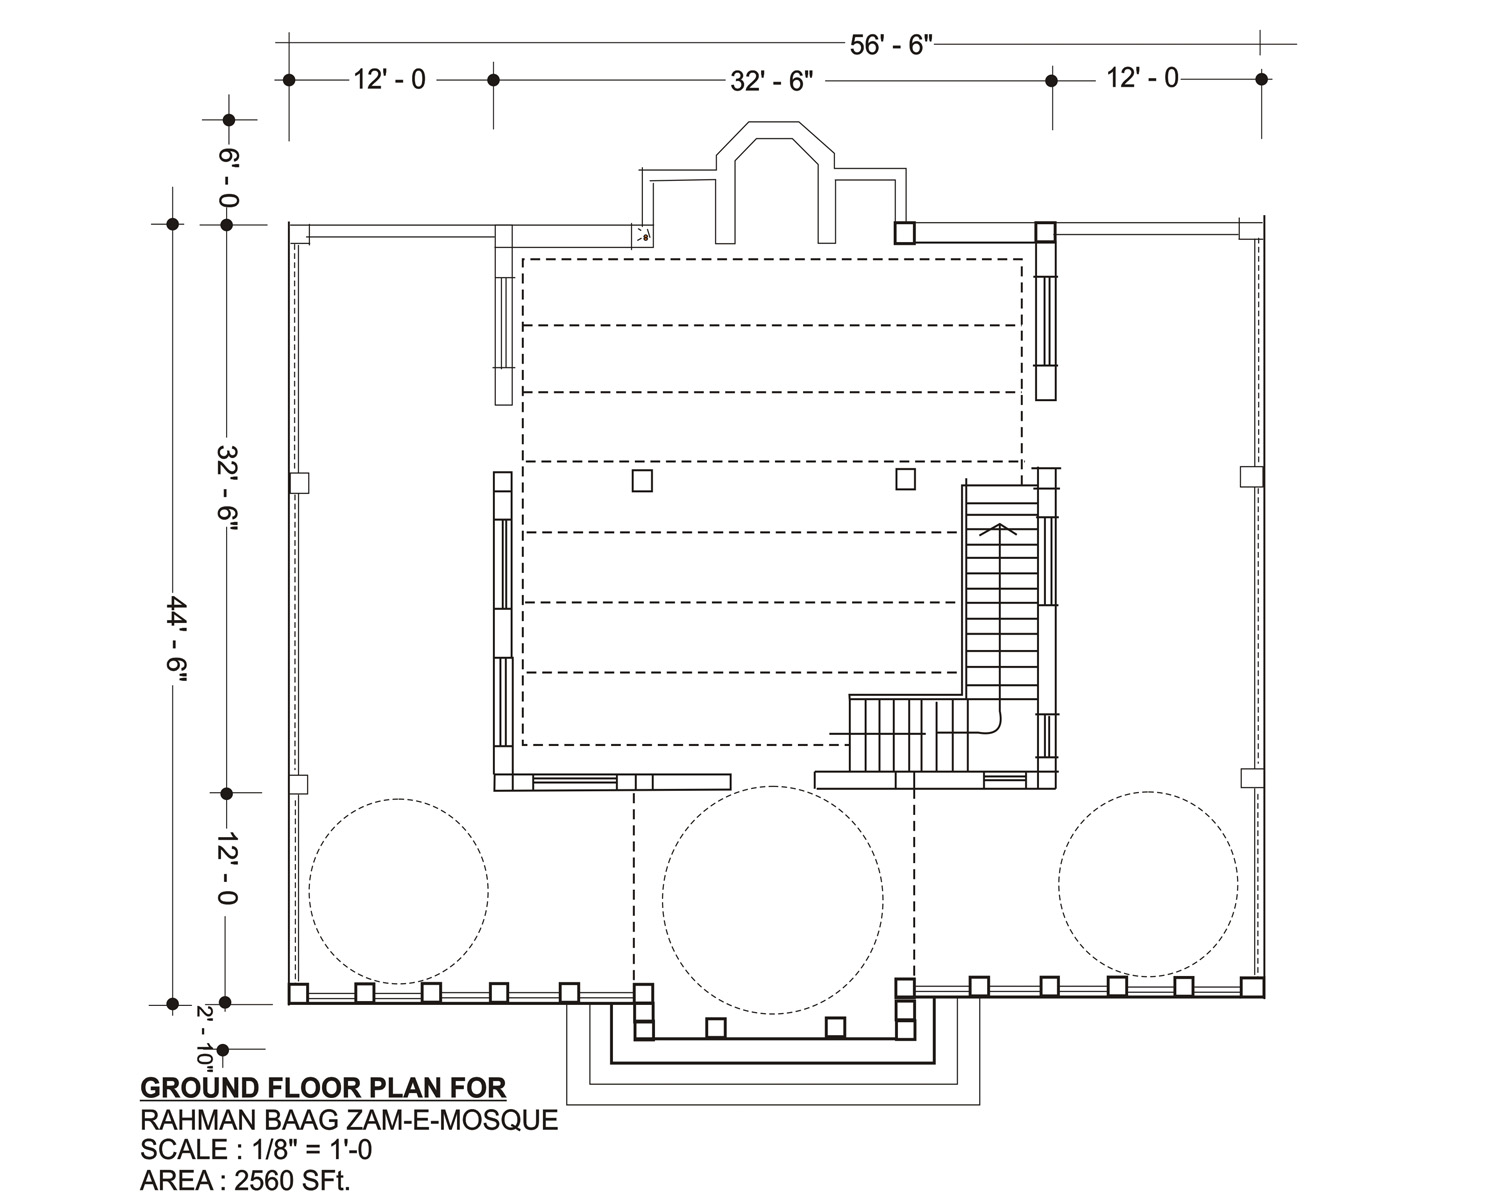 5Ground Floor Plan